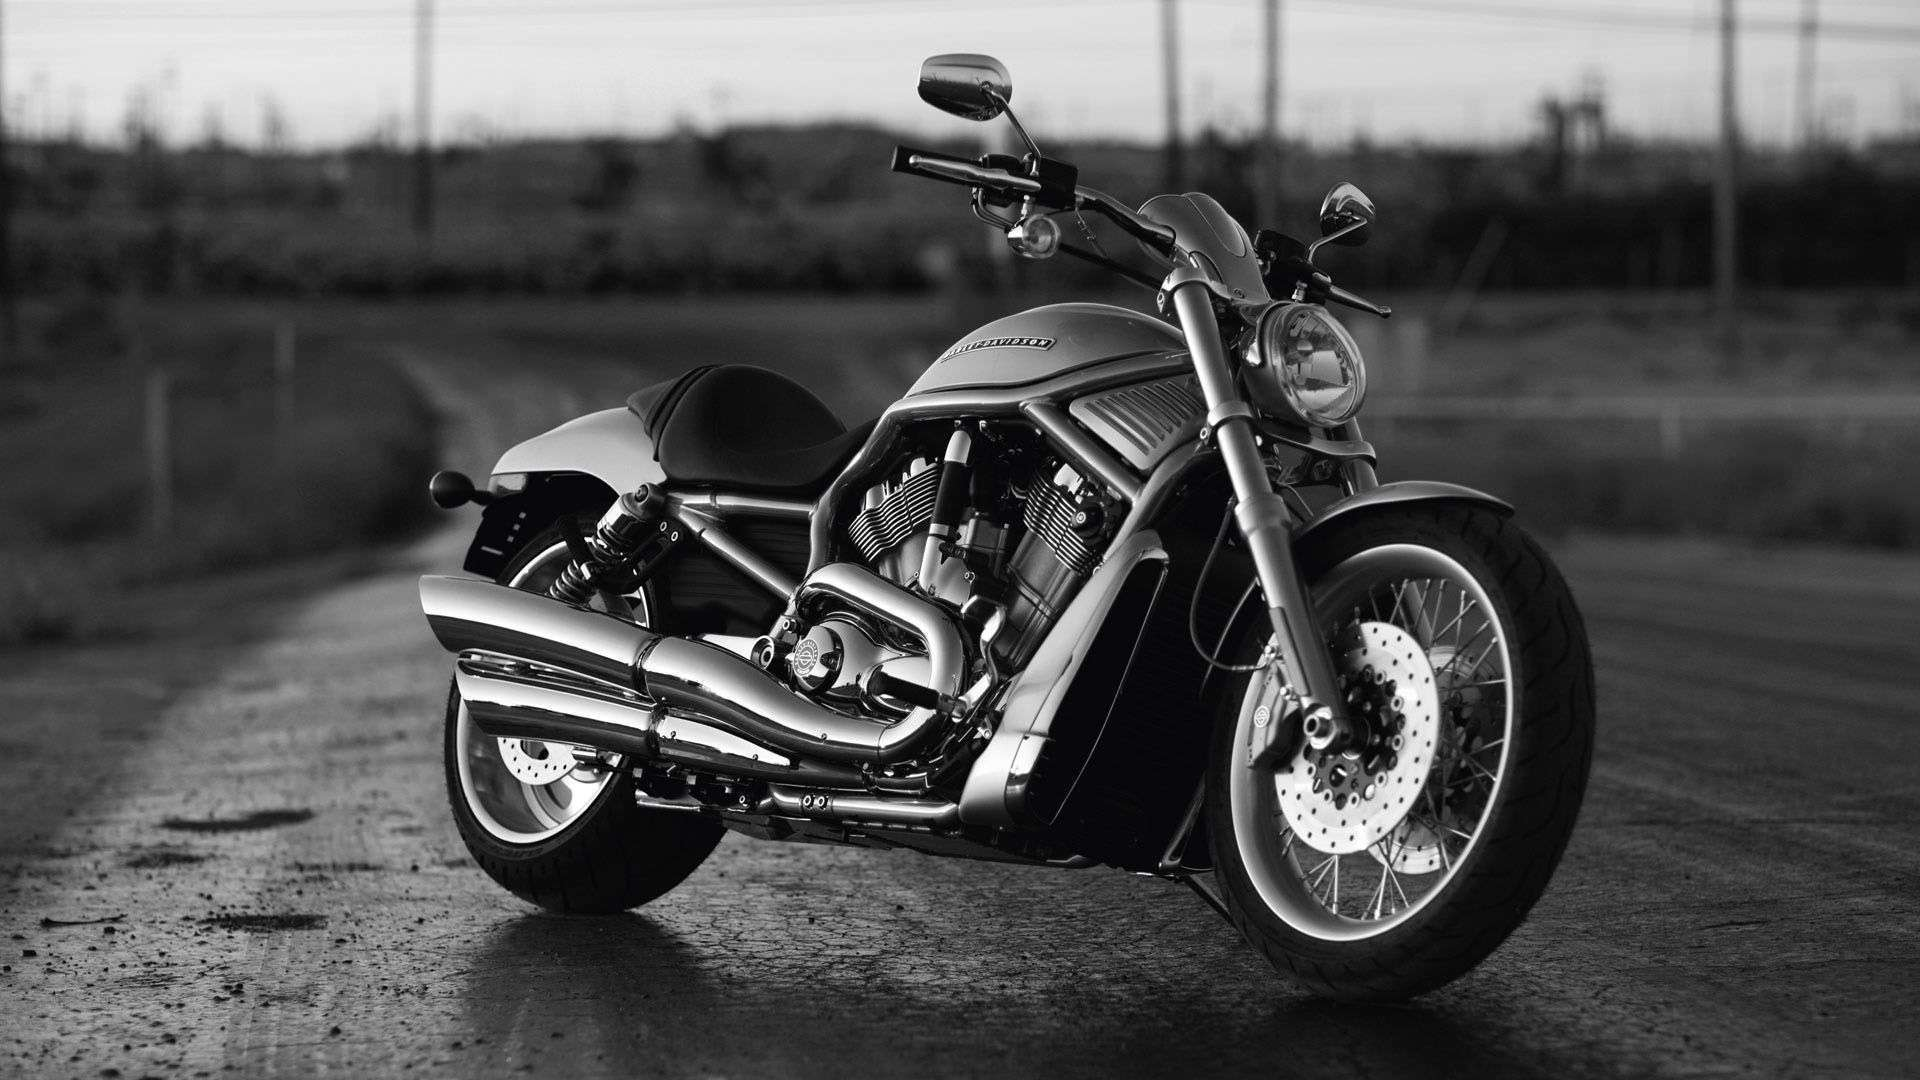 cars wallpapers motorcycles harley - photo #16